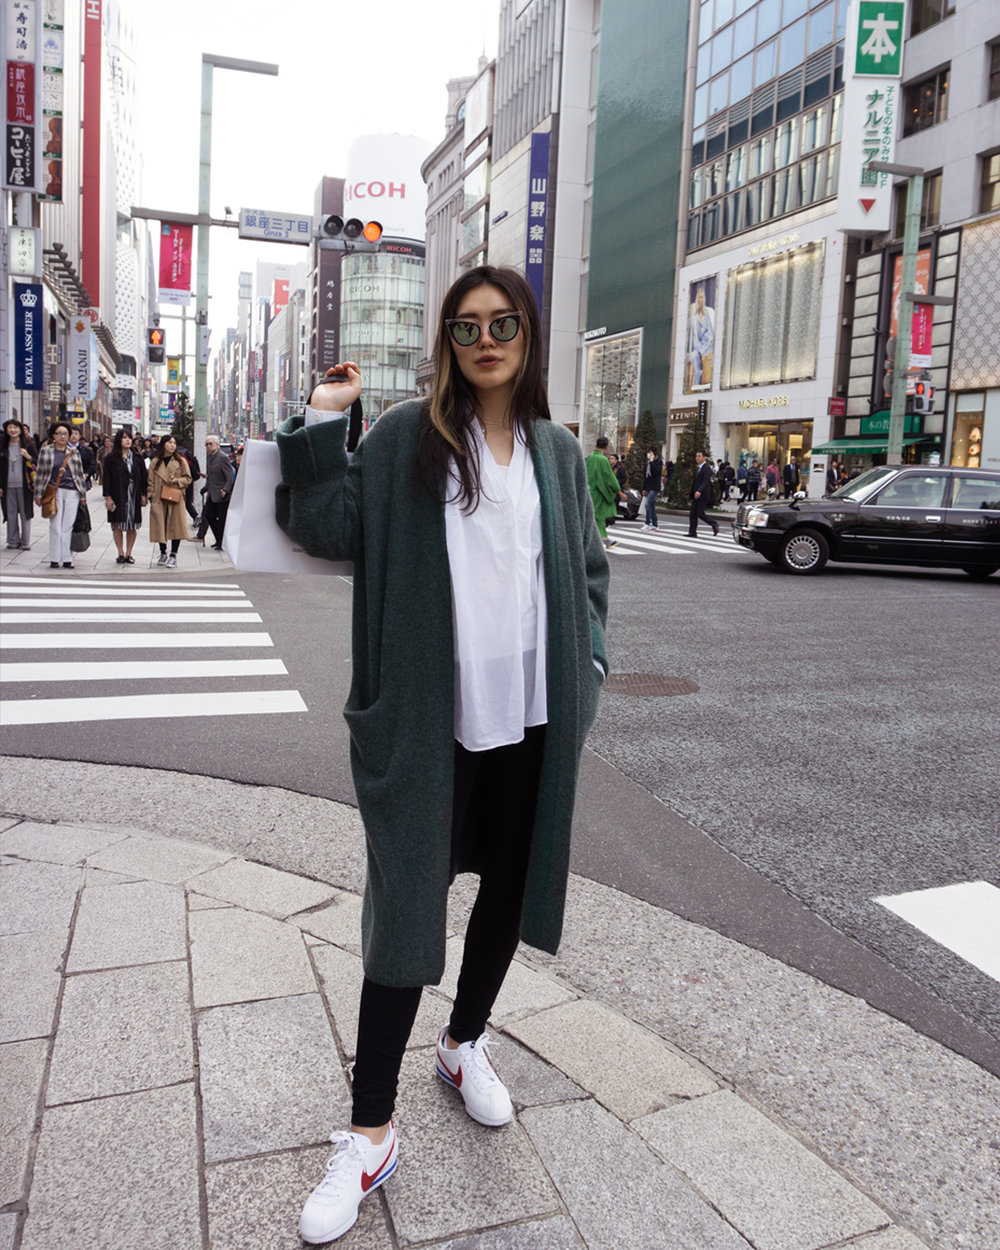 Mandkhai wears - Cloud Coat in green  MANDKHAI  - shop it  here  , Shirt -  UNIQLO , Pants -  HELMUT LANG , Shoes -  NIKE